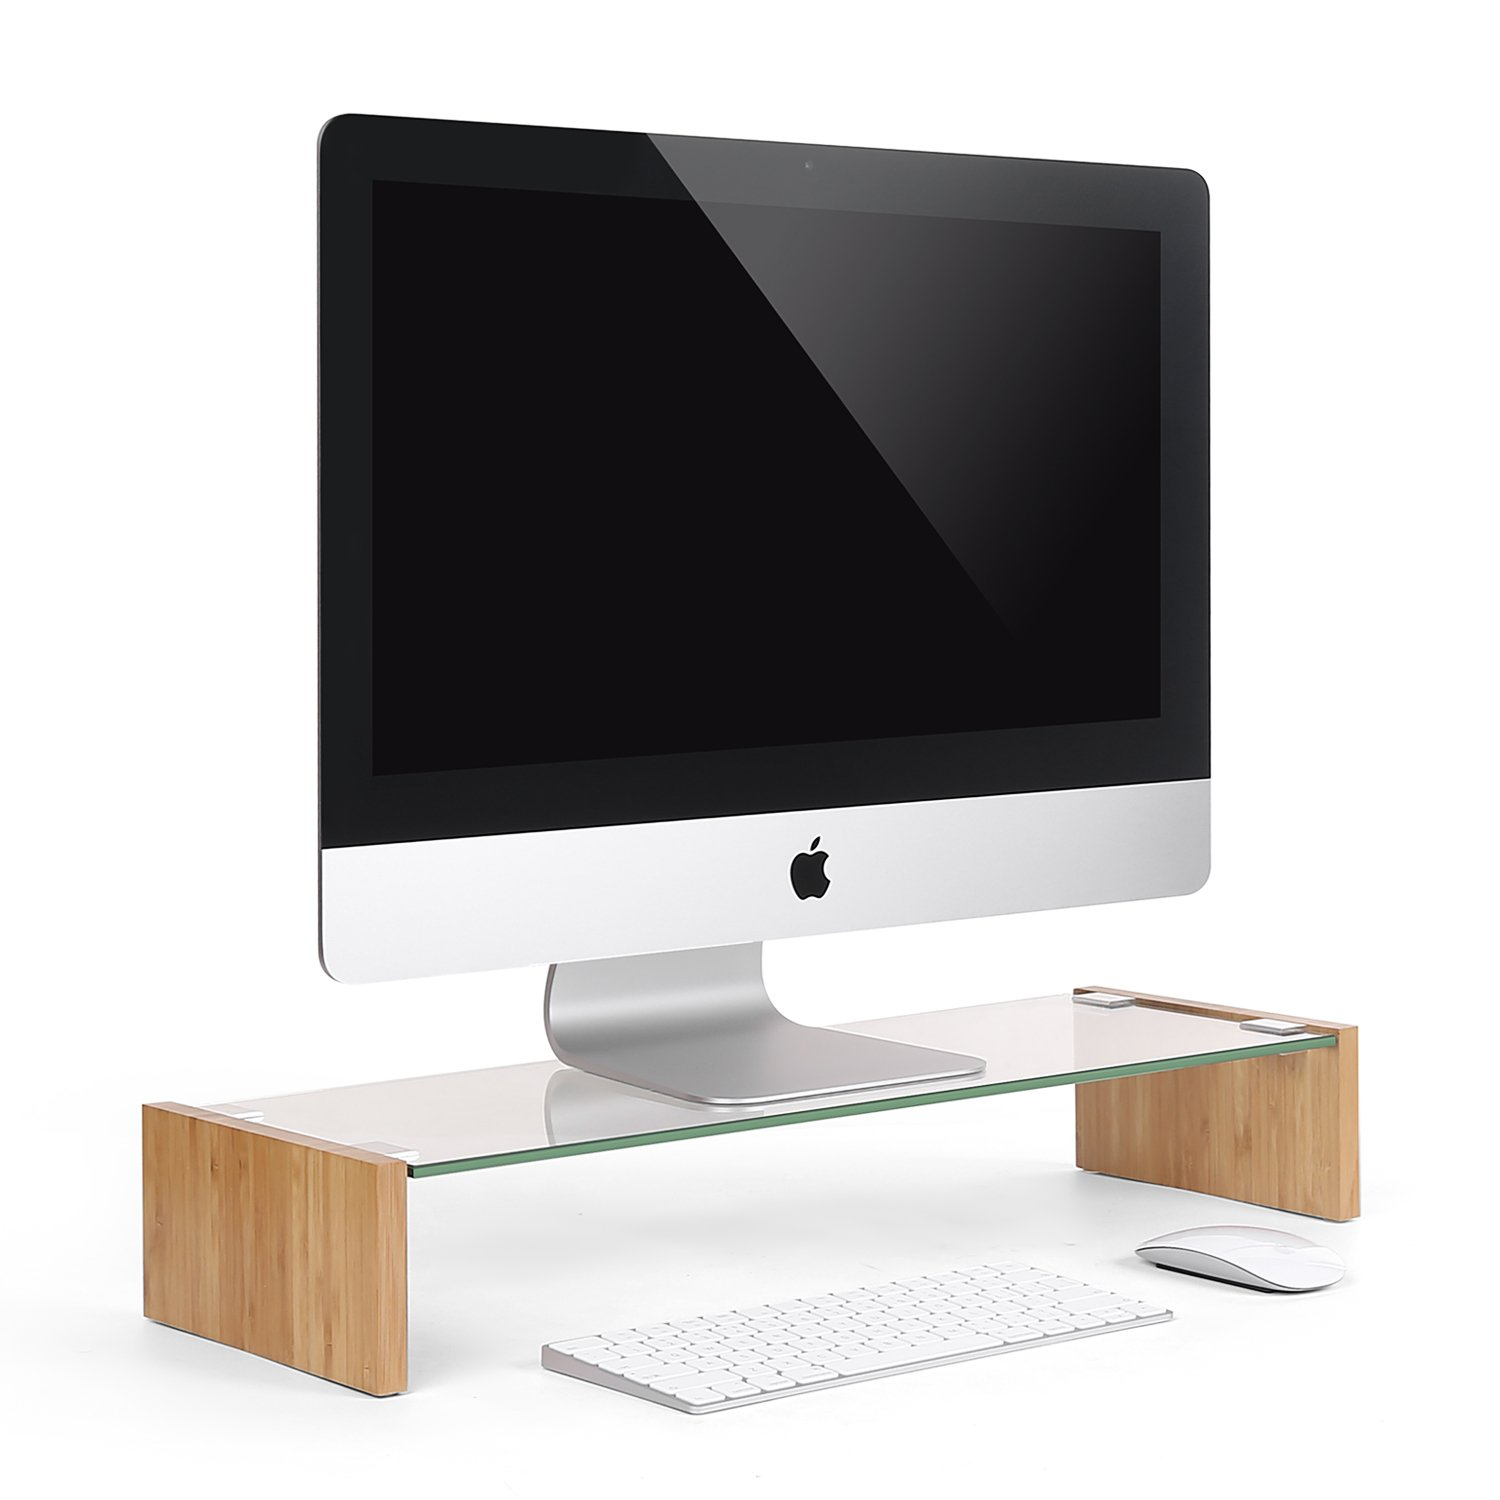 SACVON Tempered Glass Monitor Stand Riser for Computer,iMac,Laptop,Printer,Xbox One. Save Space Desktop Stand-Clear Bamboo